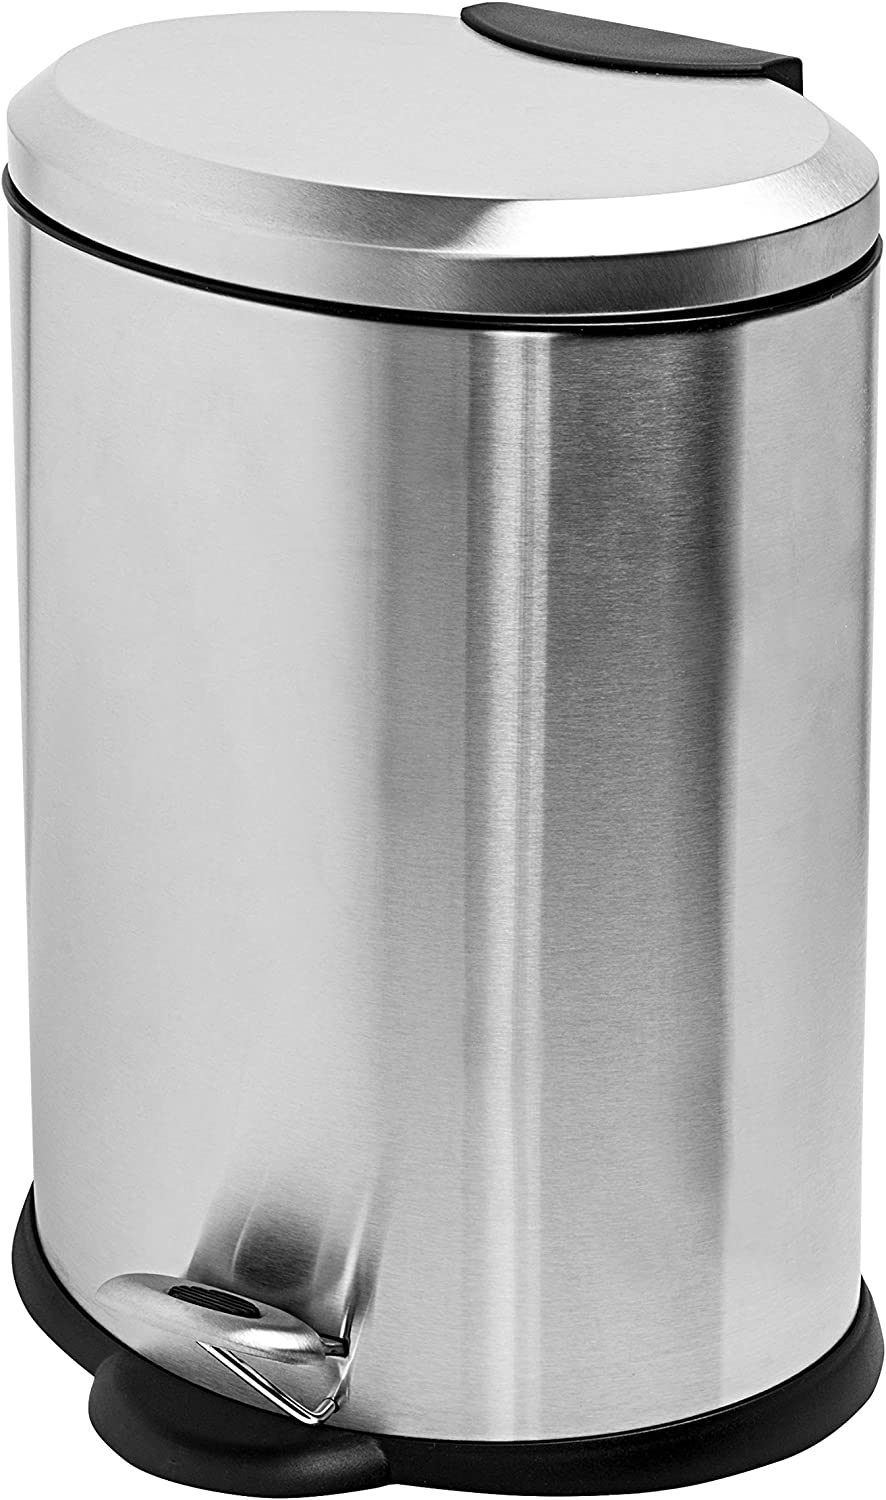 Honey-Can-Do 12L Oval SS New popularity 5 ☆ popular Step Can Silver TRS-01447